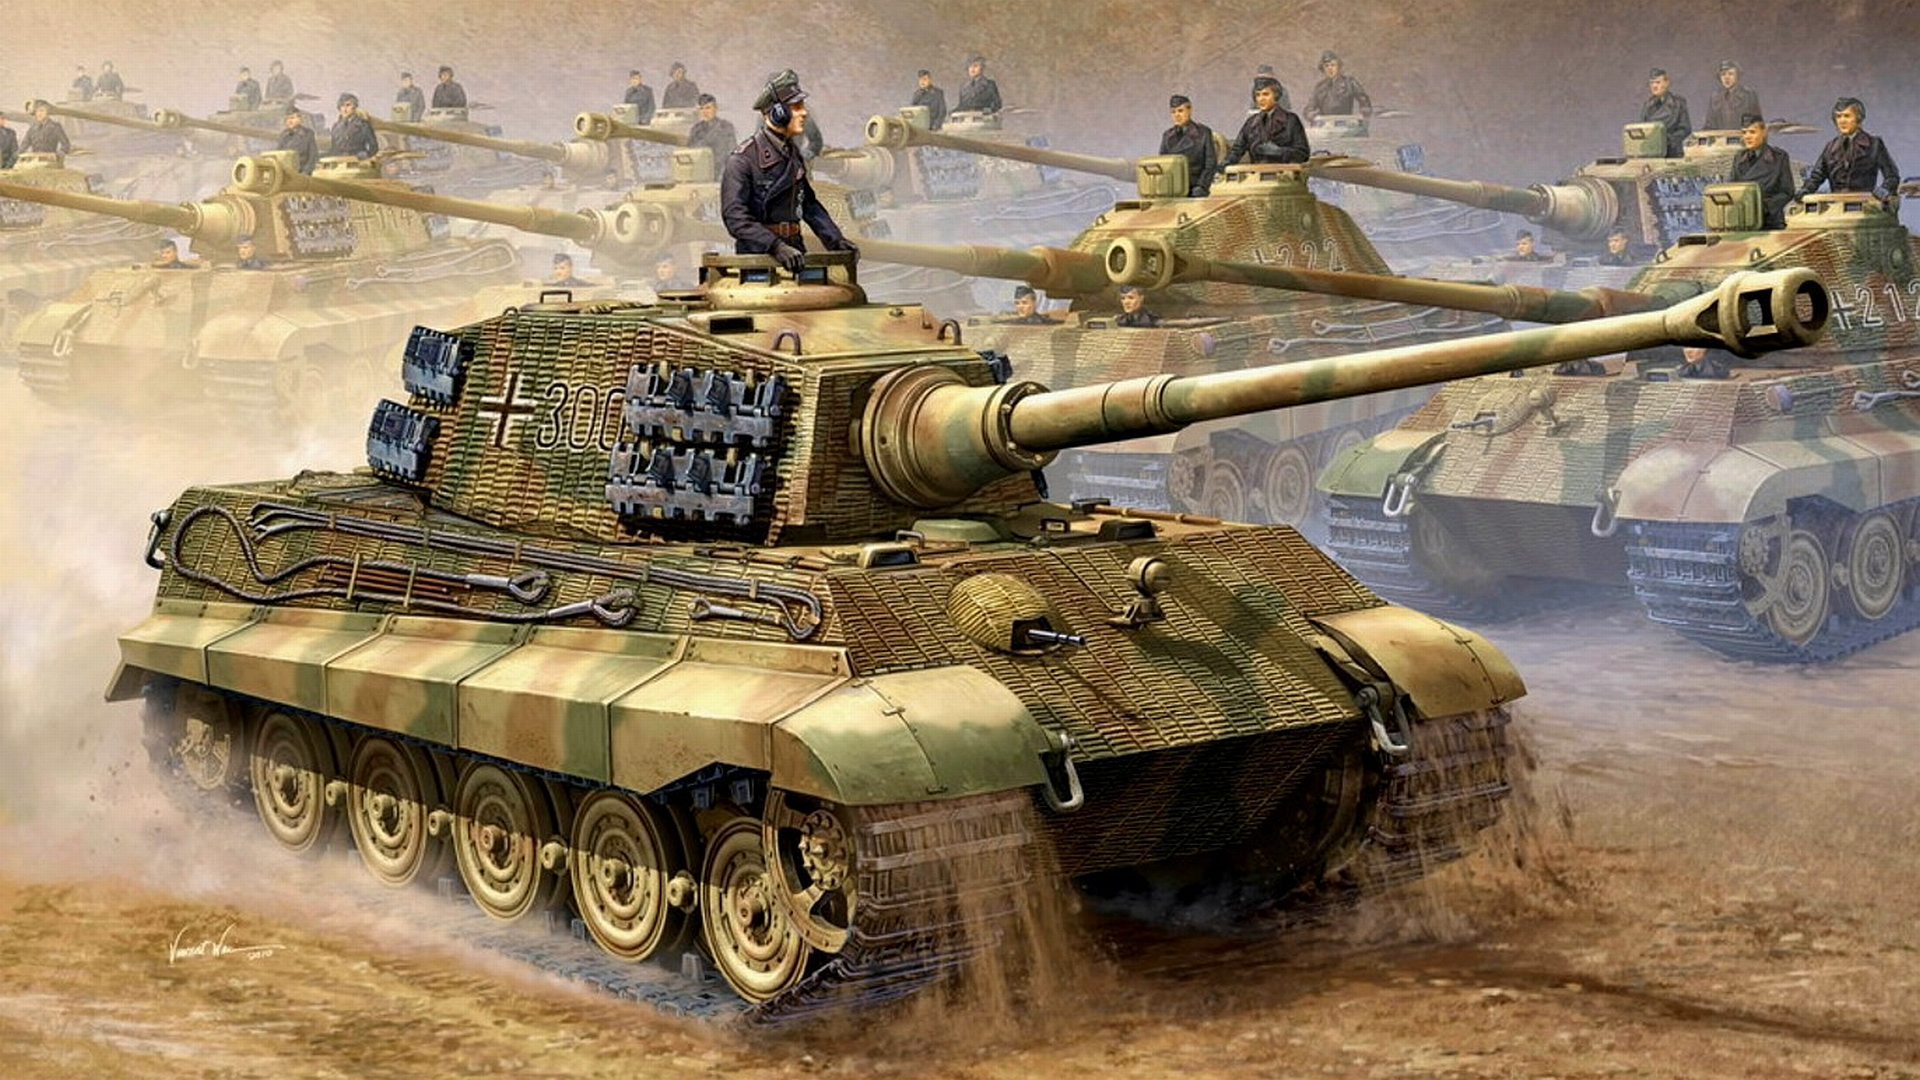 military-tanks-images_1471507